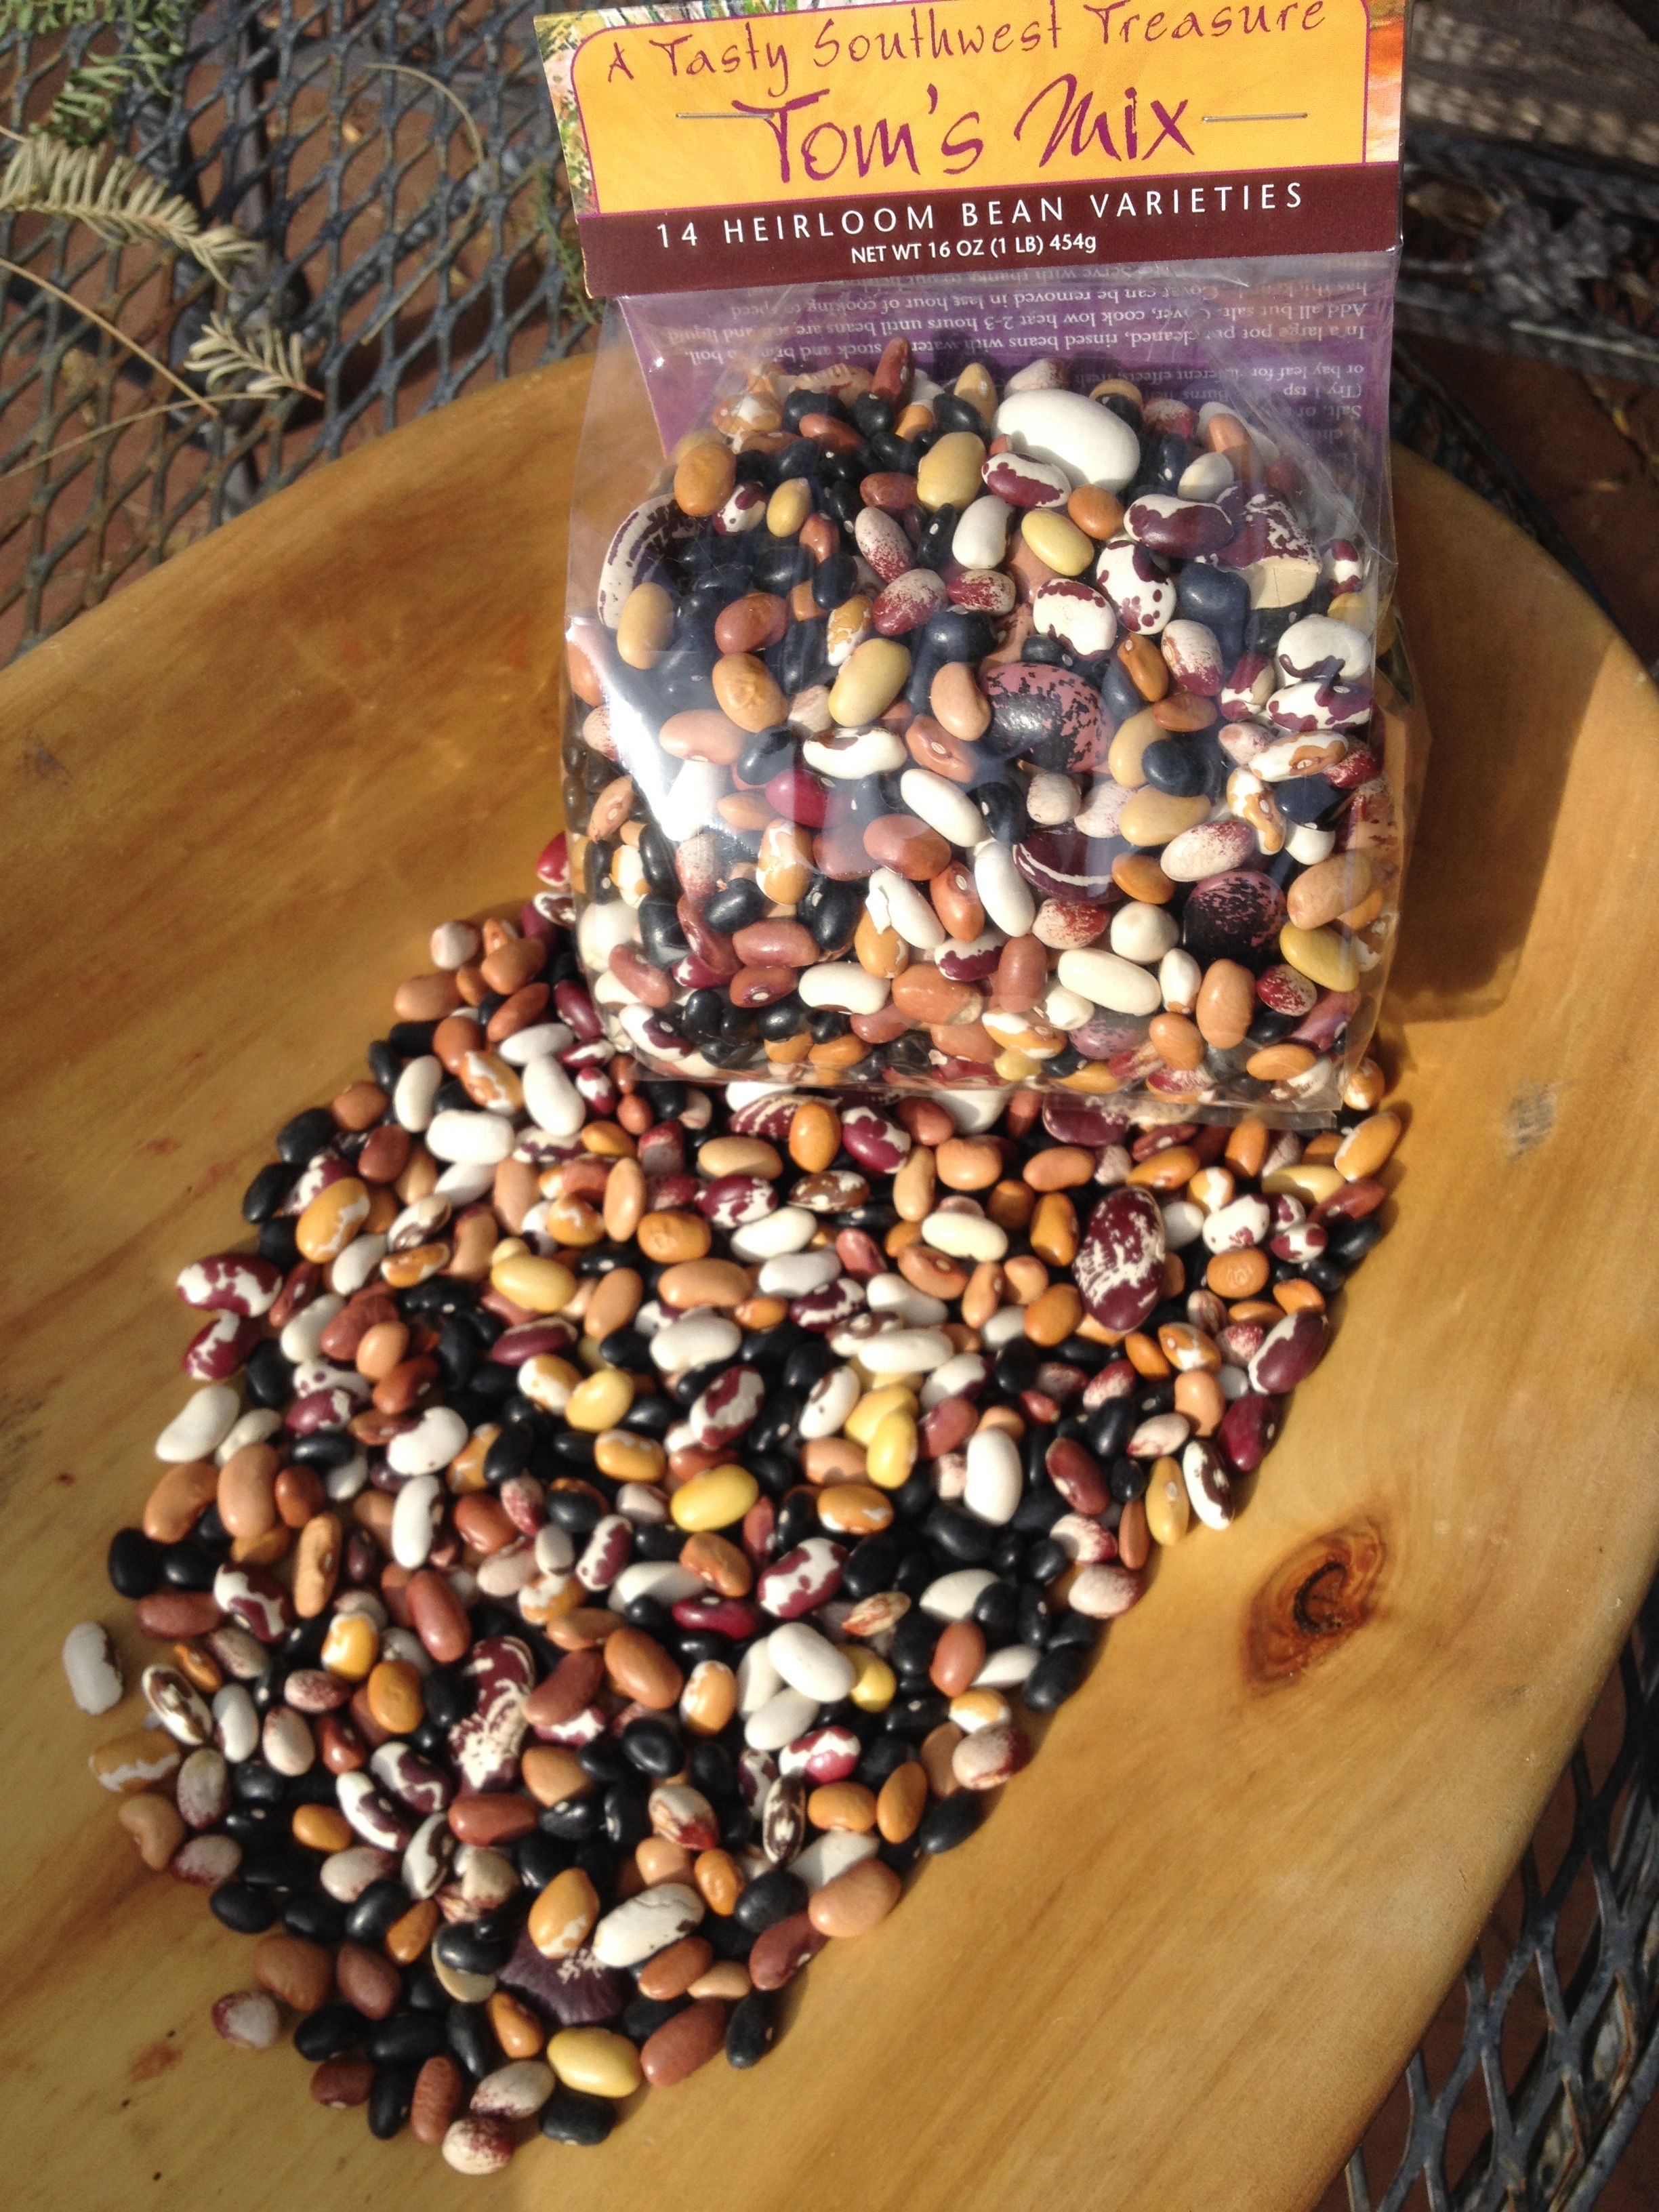 Tom's Mix 14-Heirloom Bean Mix makes a perfect gift from the Southwest--made spicy with chiltepines! Find them at NativeSeeds/SEARCH store, Tohono Chul Museum Shop, Wiwpul Du'ag at San Xavier Plaza, and the UNICEF Store in Monterrey Village, Tucson; or online www.flordemayoarts.com